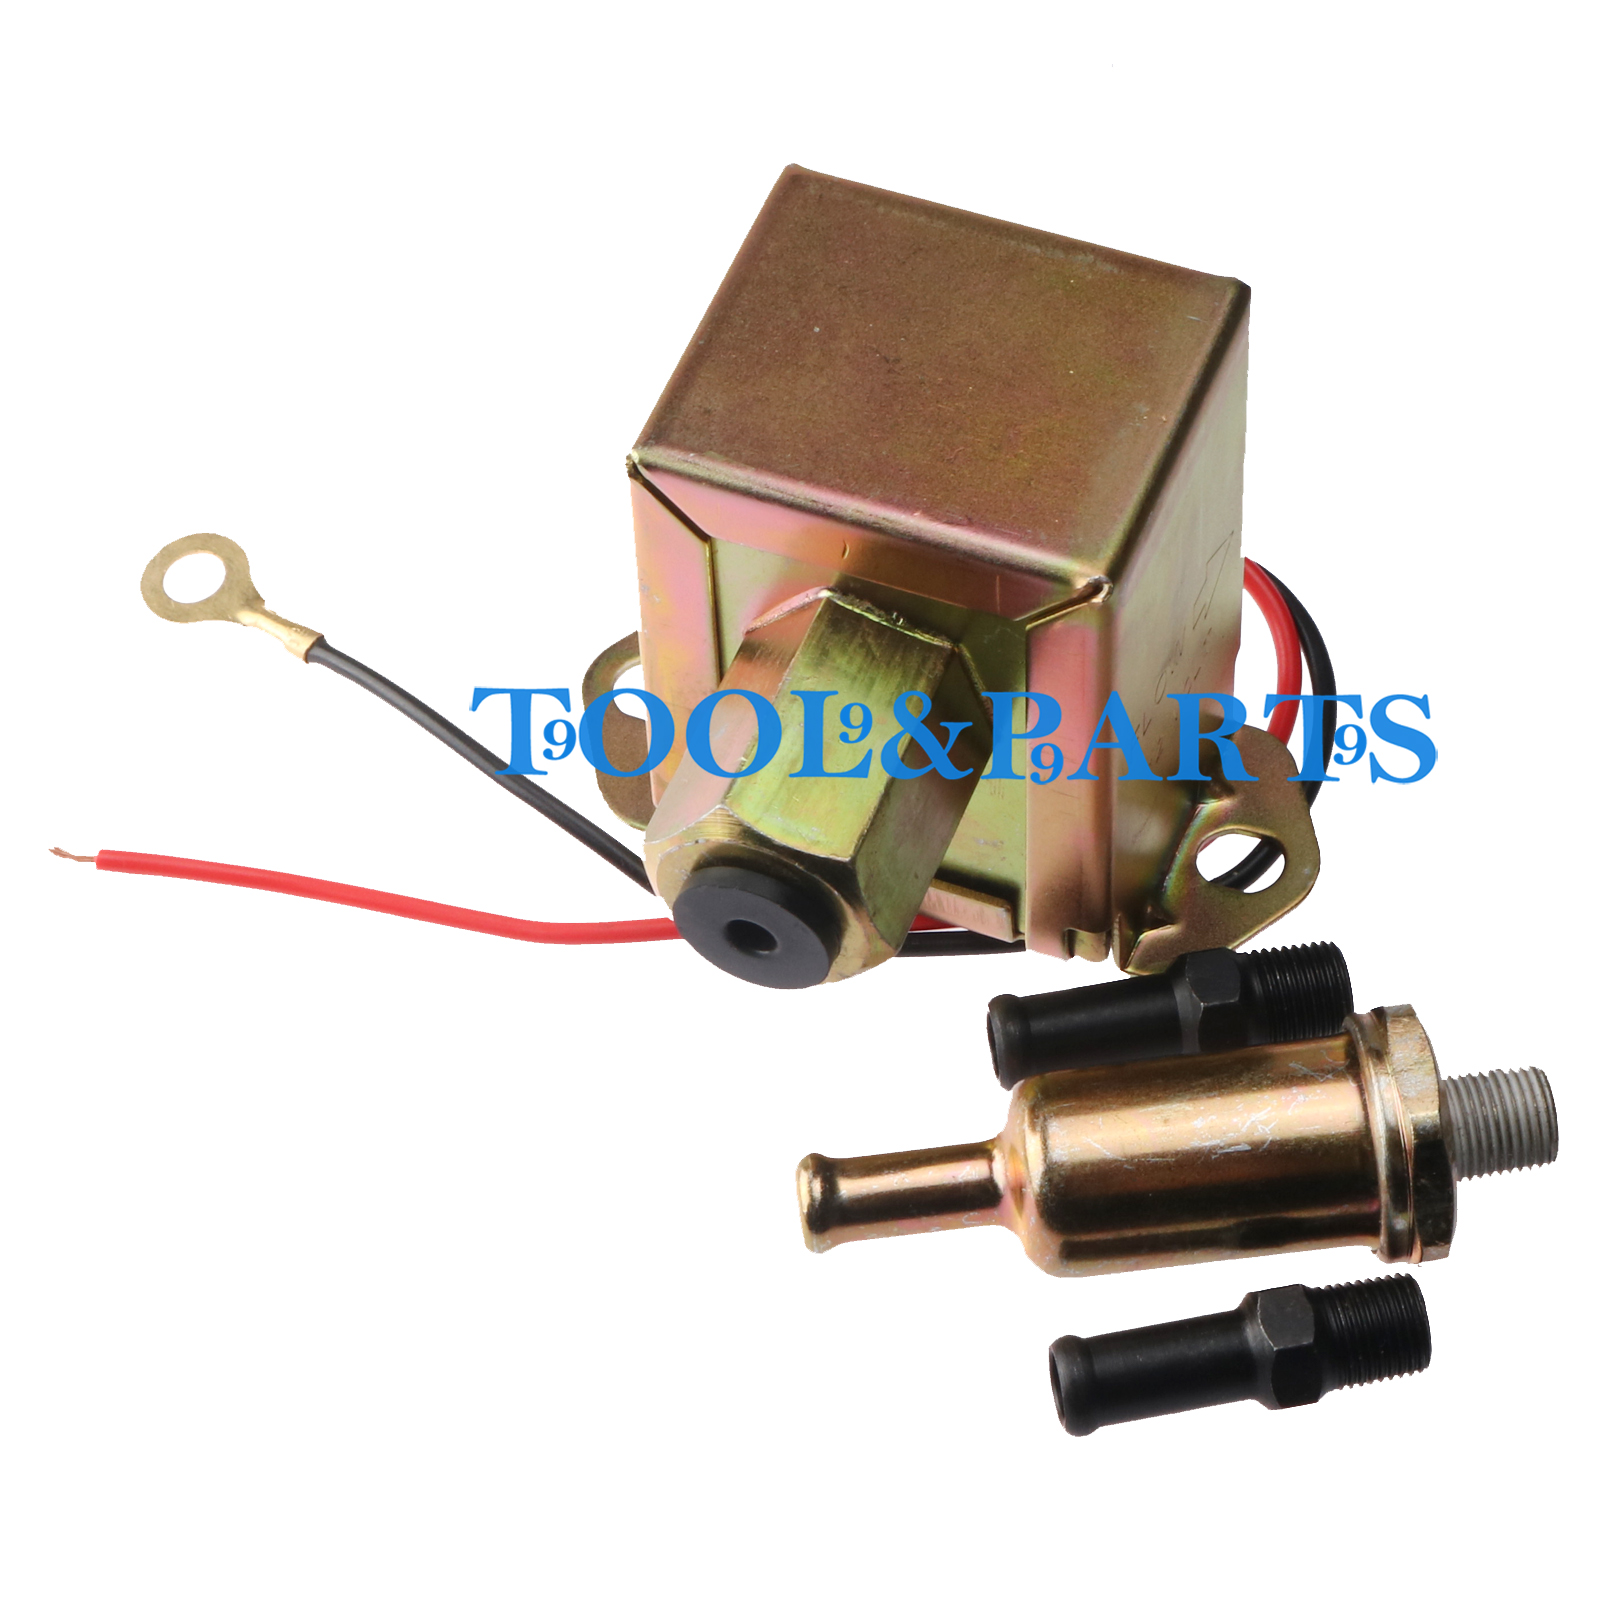 For Thermo King Tripac APU RV RigMaster Truck 12V Electric Fuel Pump